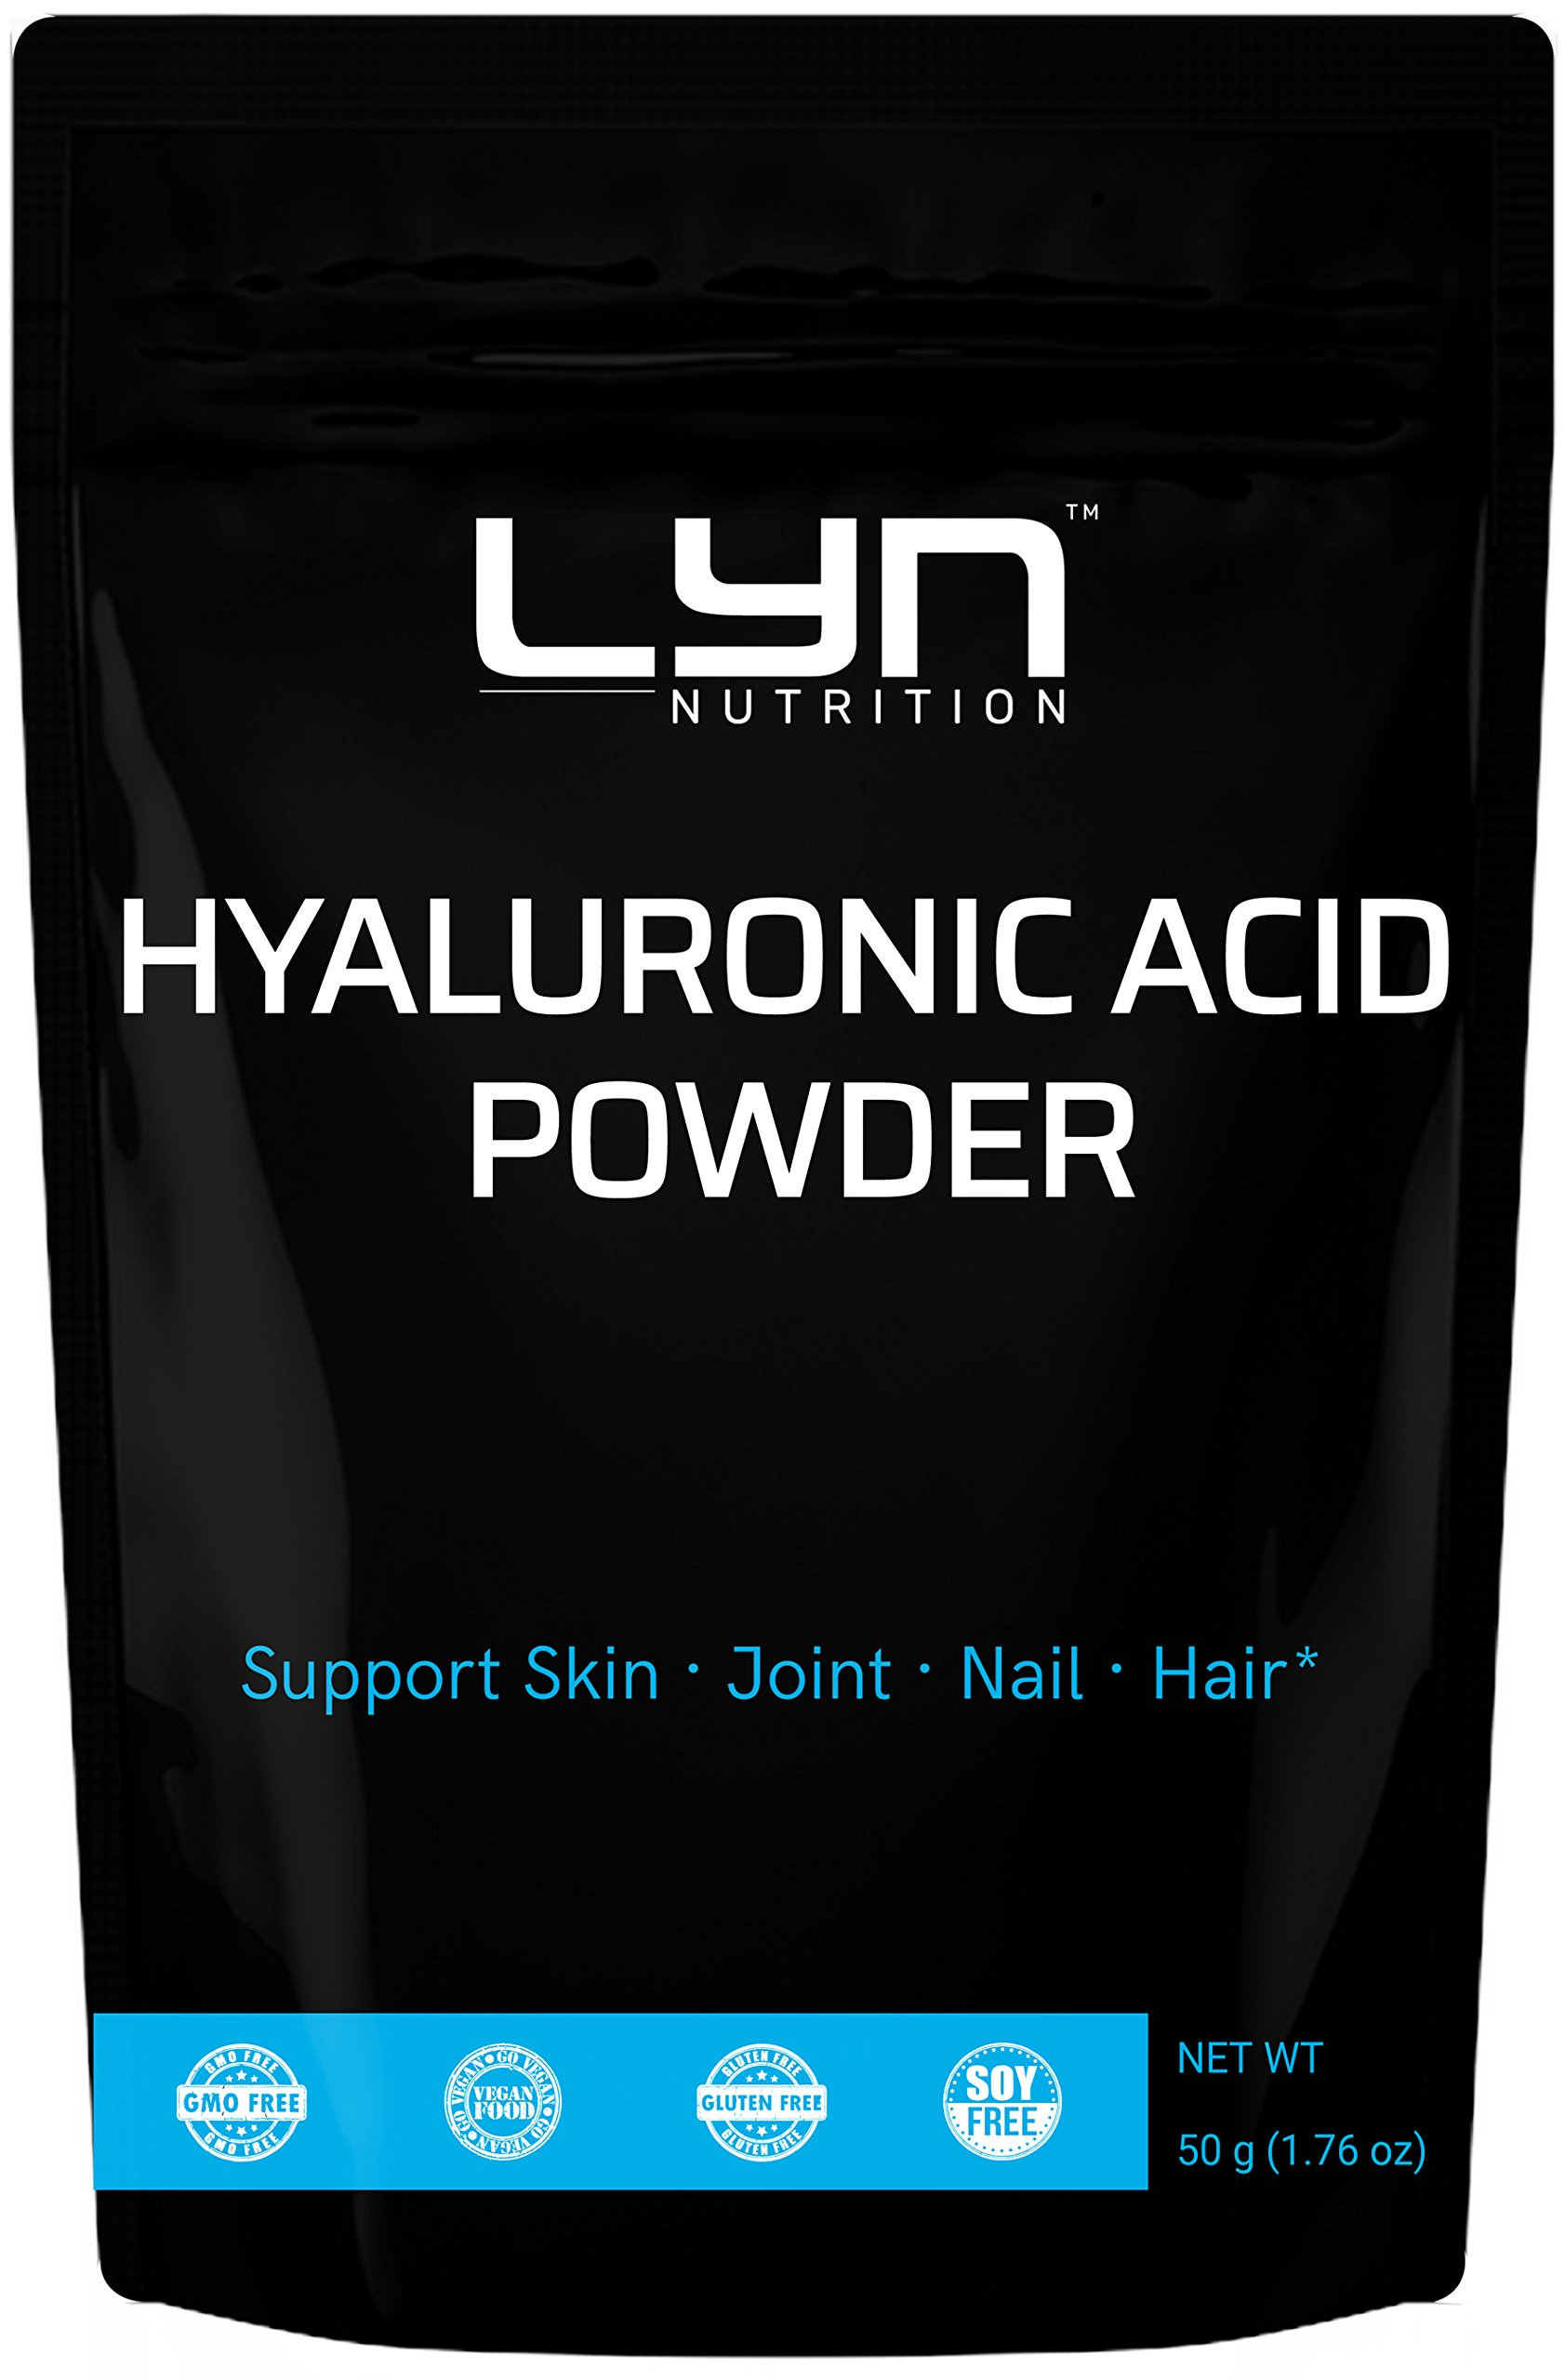 Premium Pure Natural Hyaluronic Acid Serum Powder, 50 grams, for Making Anti-Aging Serum, Internal Hydration, Joint Health Support, Vegan Friendly